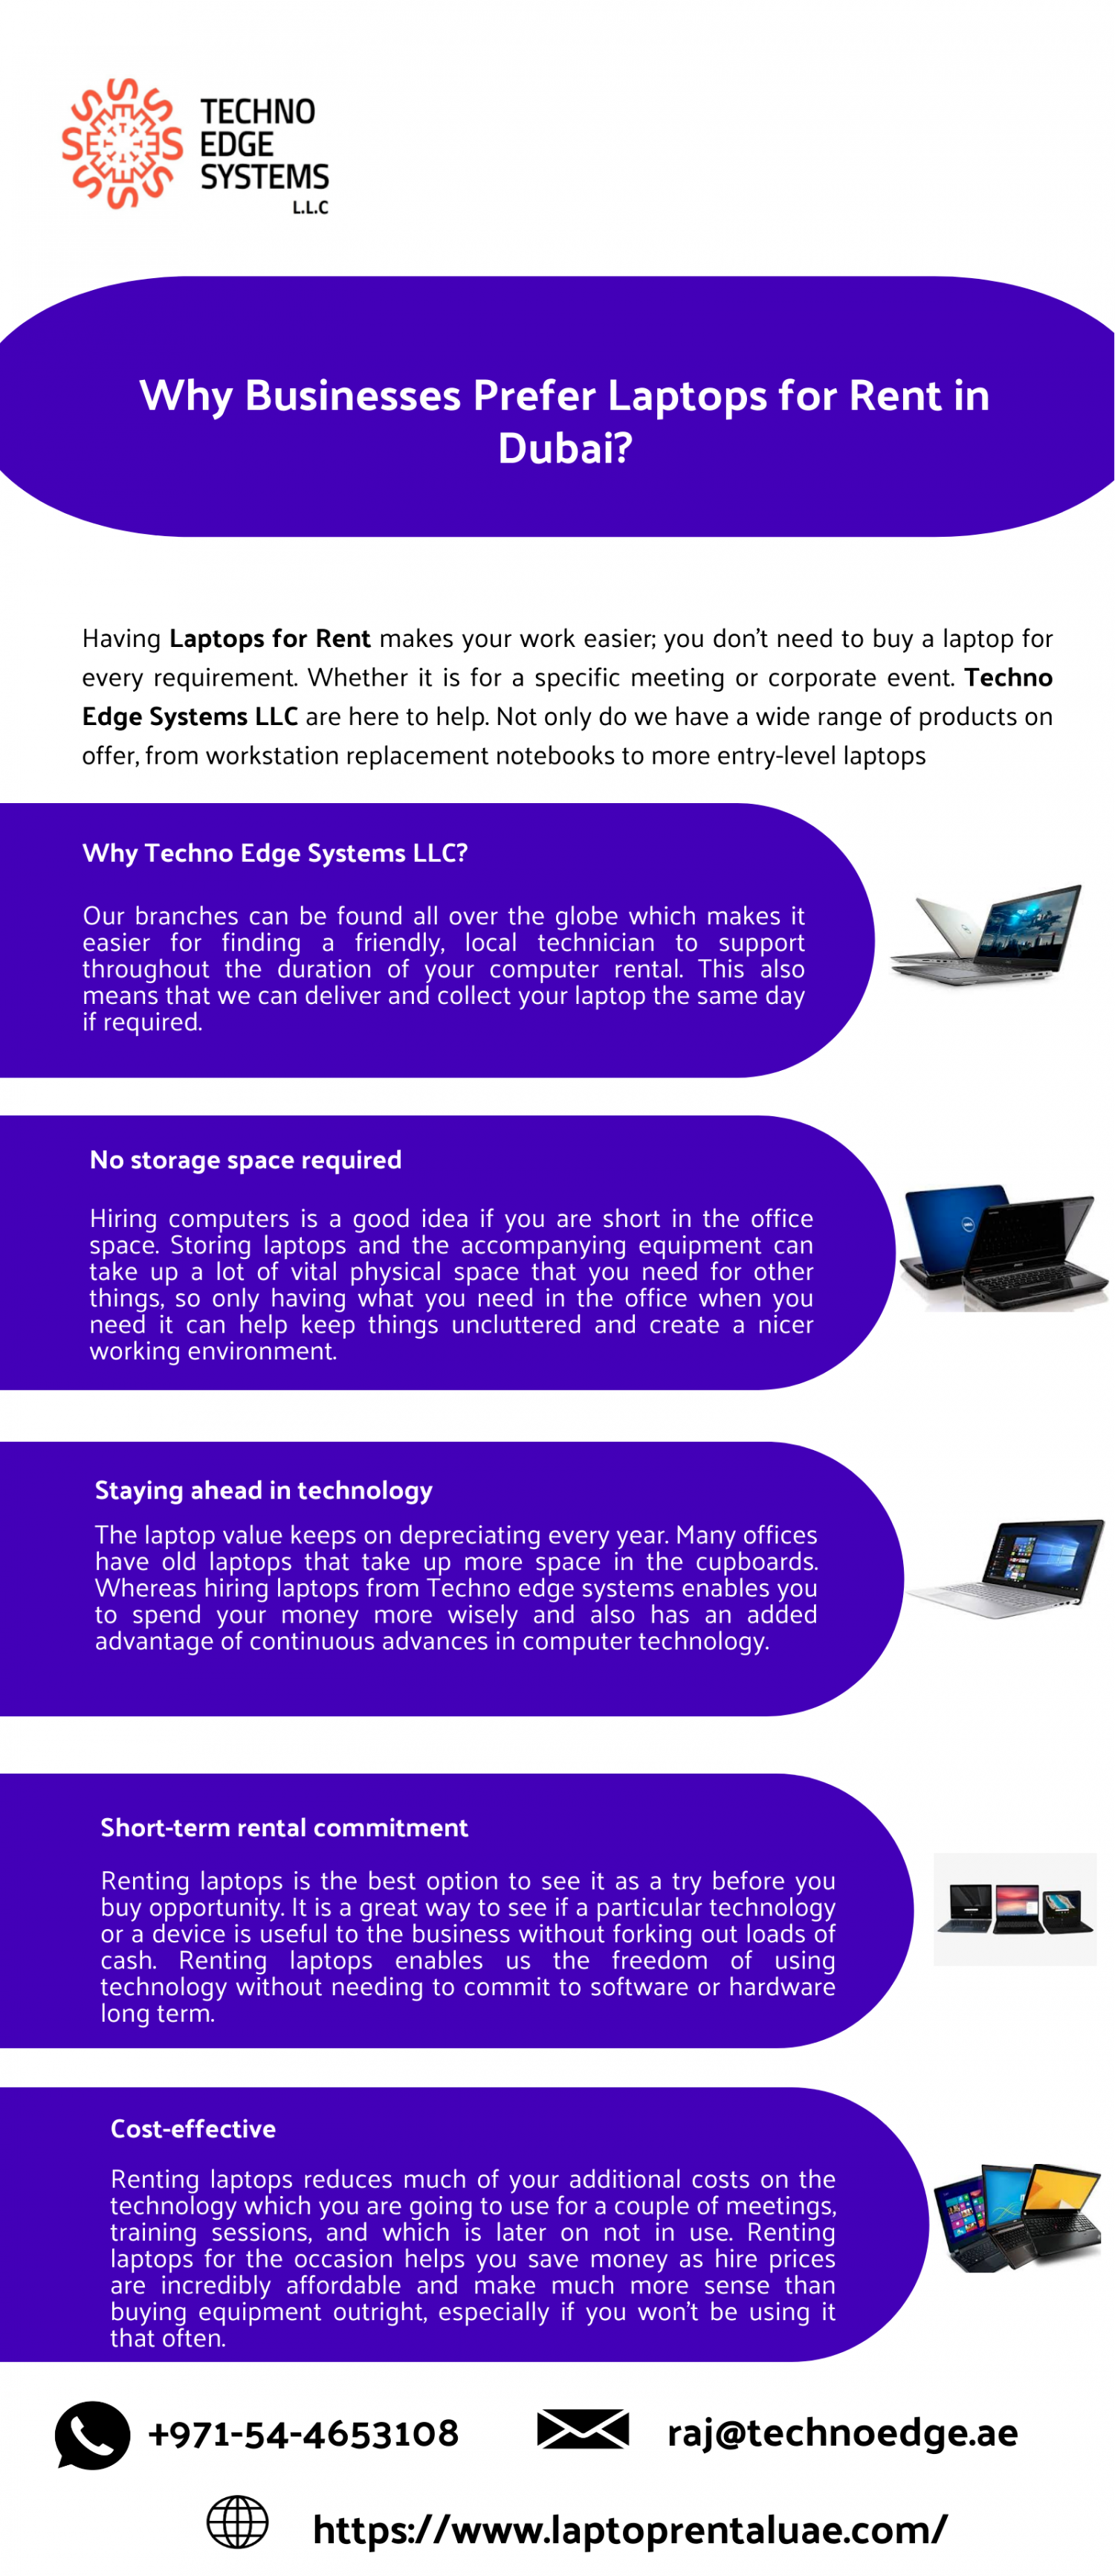 Why Businesses Prefer Laptops for Rent in Dubai? Infographic